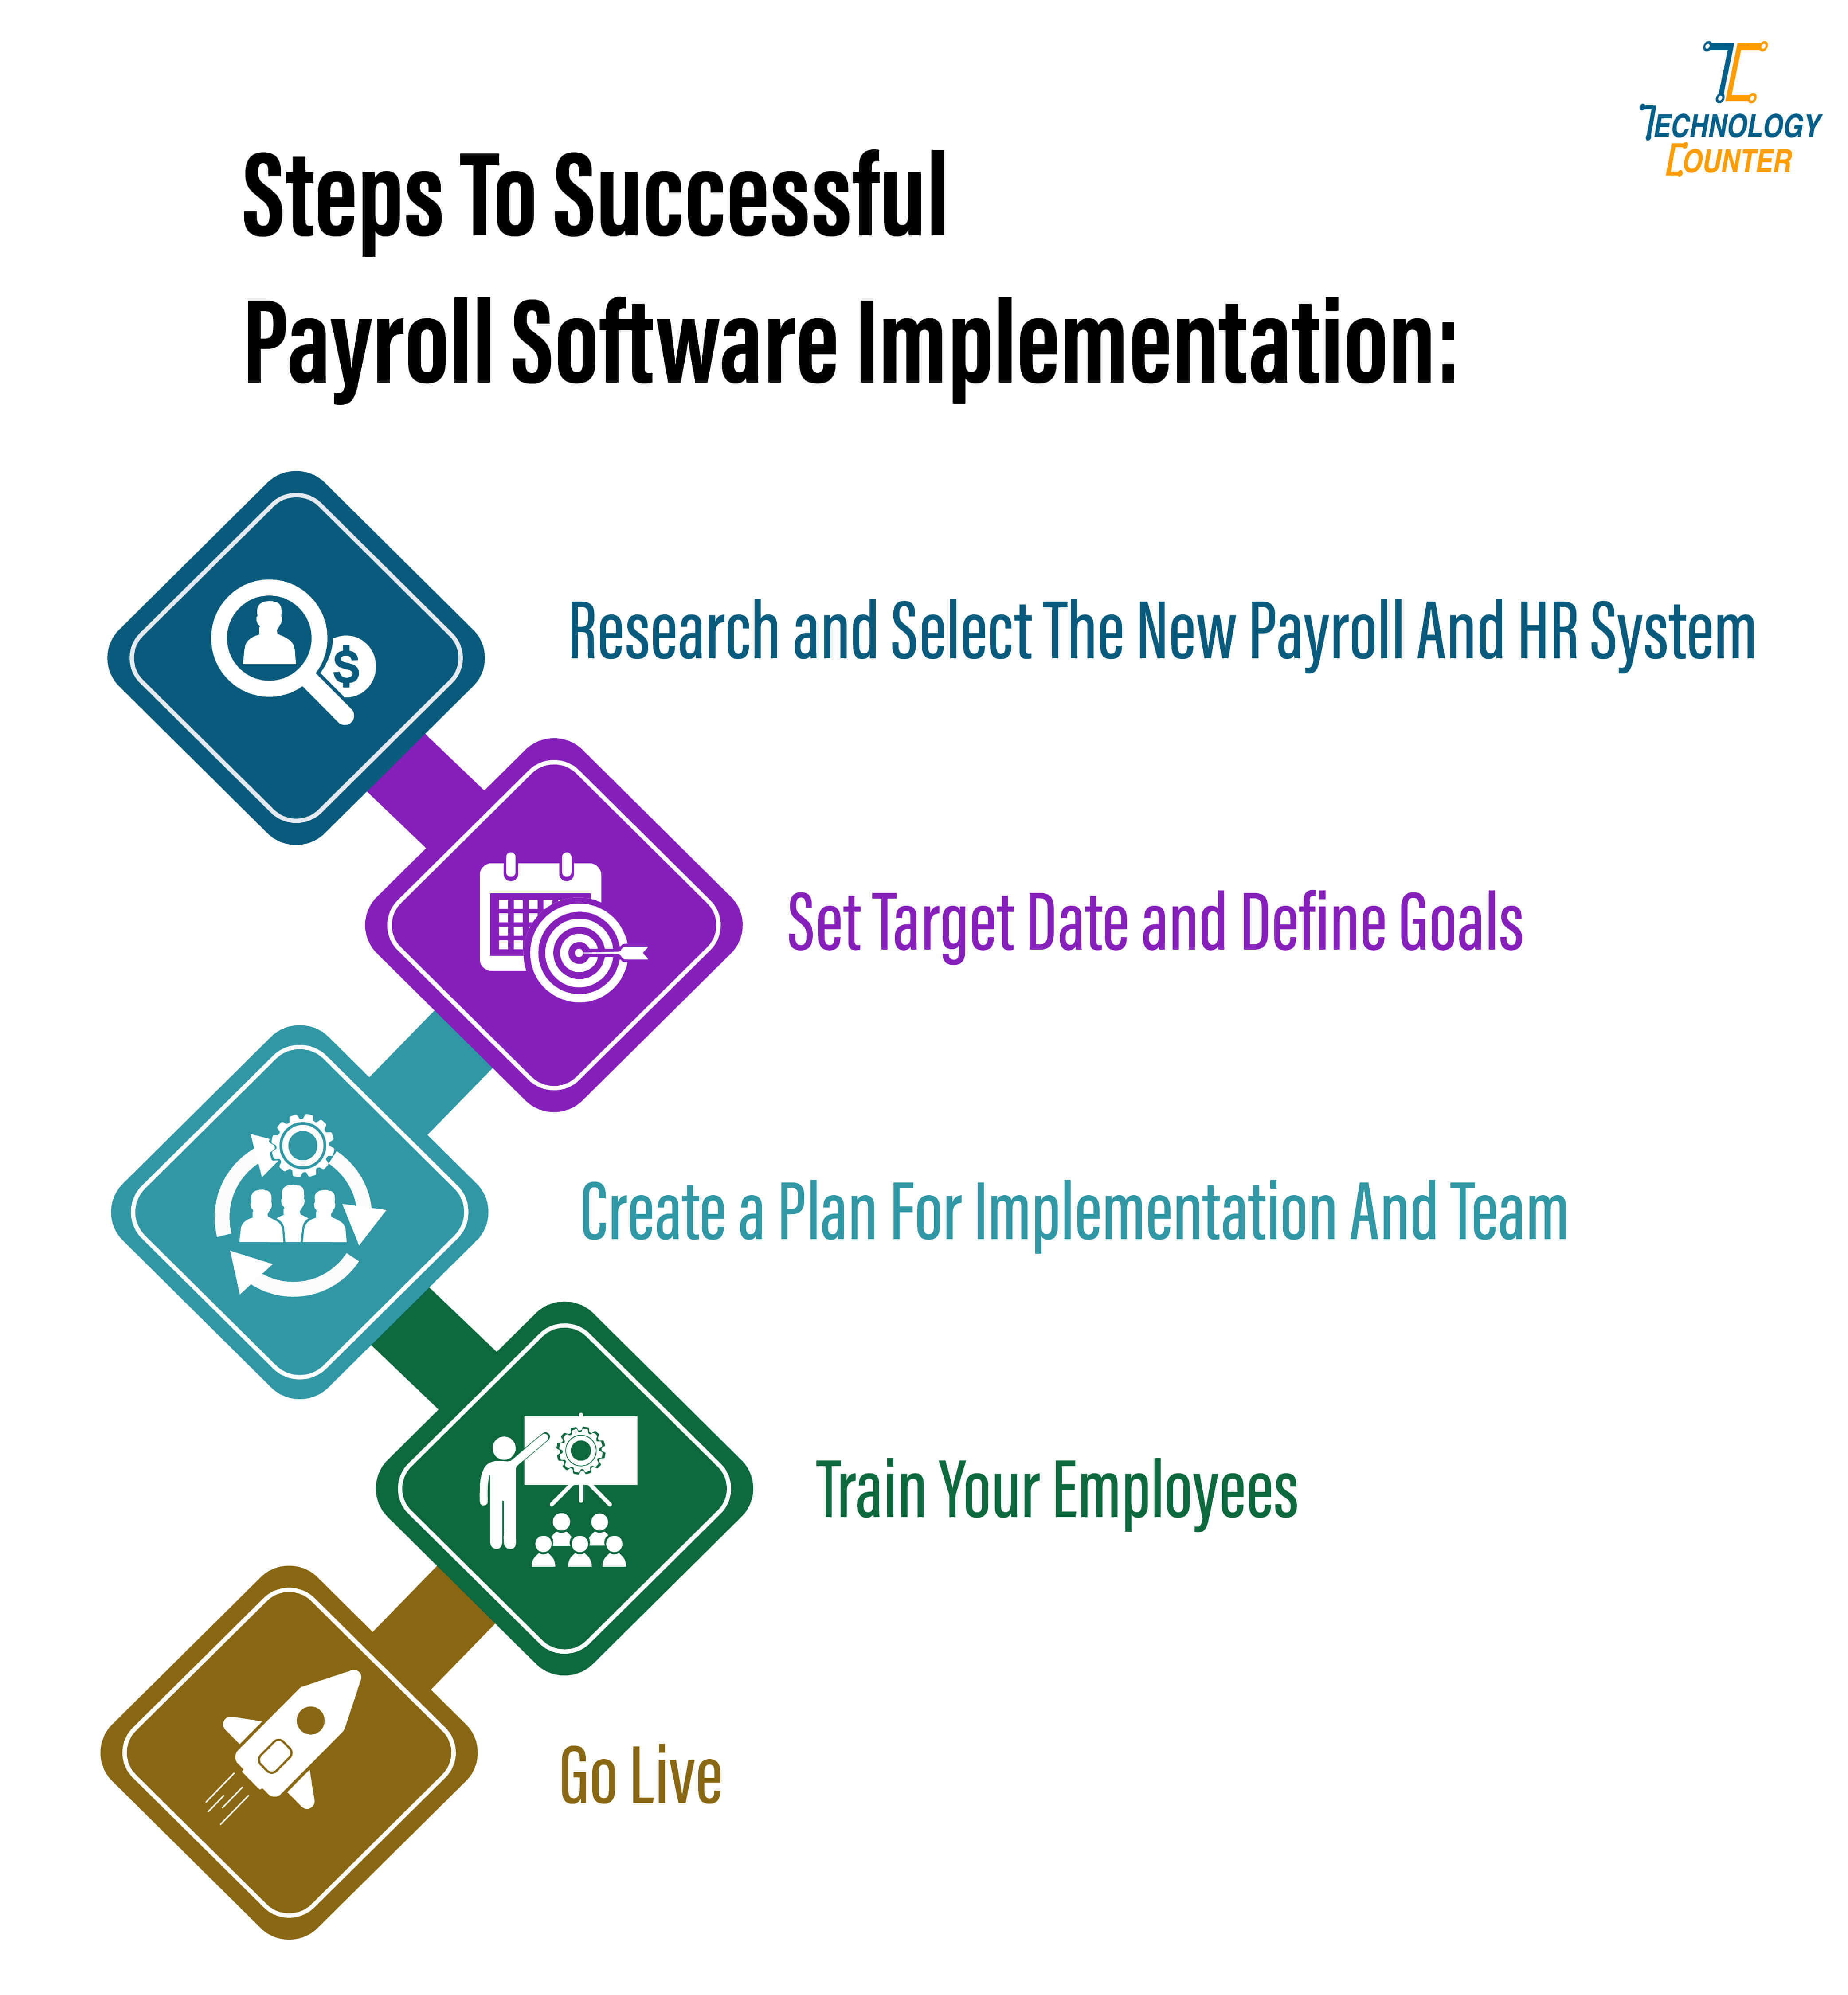 Payroll Software Implementation